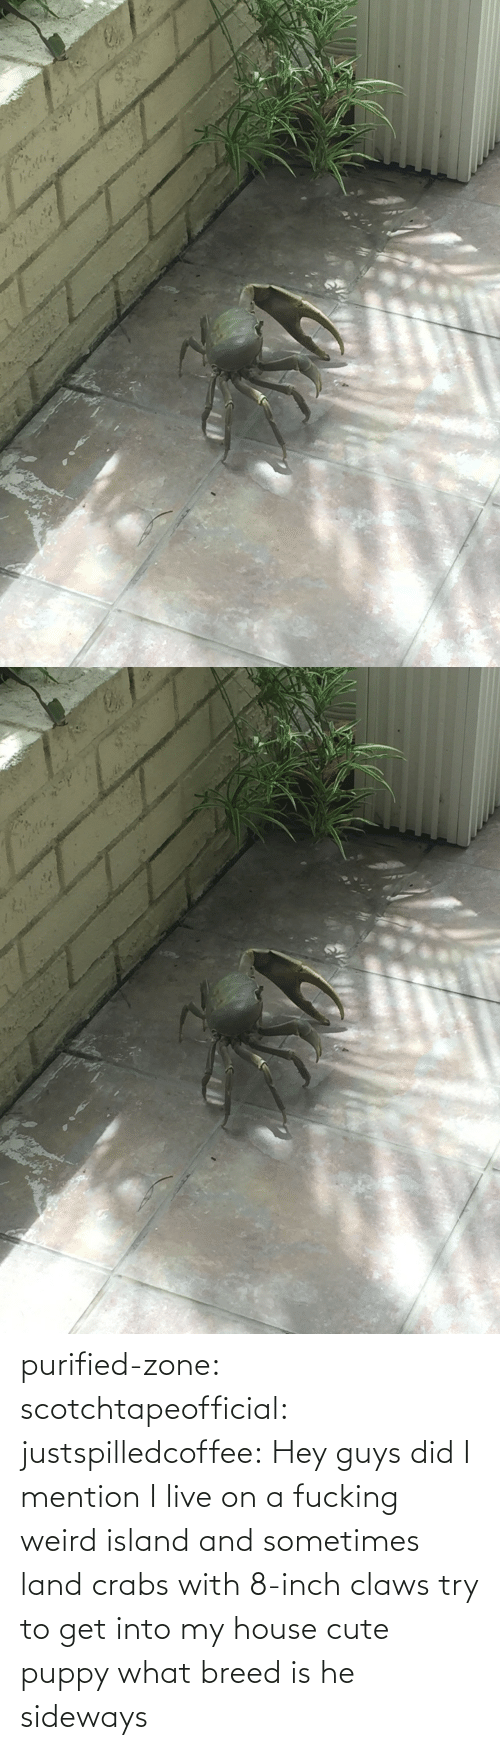 inch: purified-zone: scotchtapeofficial:  justspilledcoffee:  Hey guys did I mention I live on a fucking weird island and sometimes land crabs with 8-inch claws try to get into my house  cute puppy what breed is he  sideways